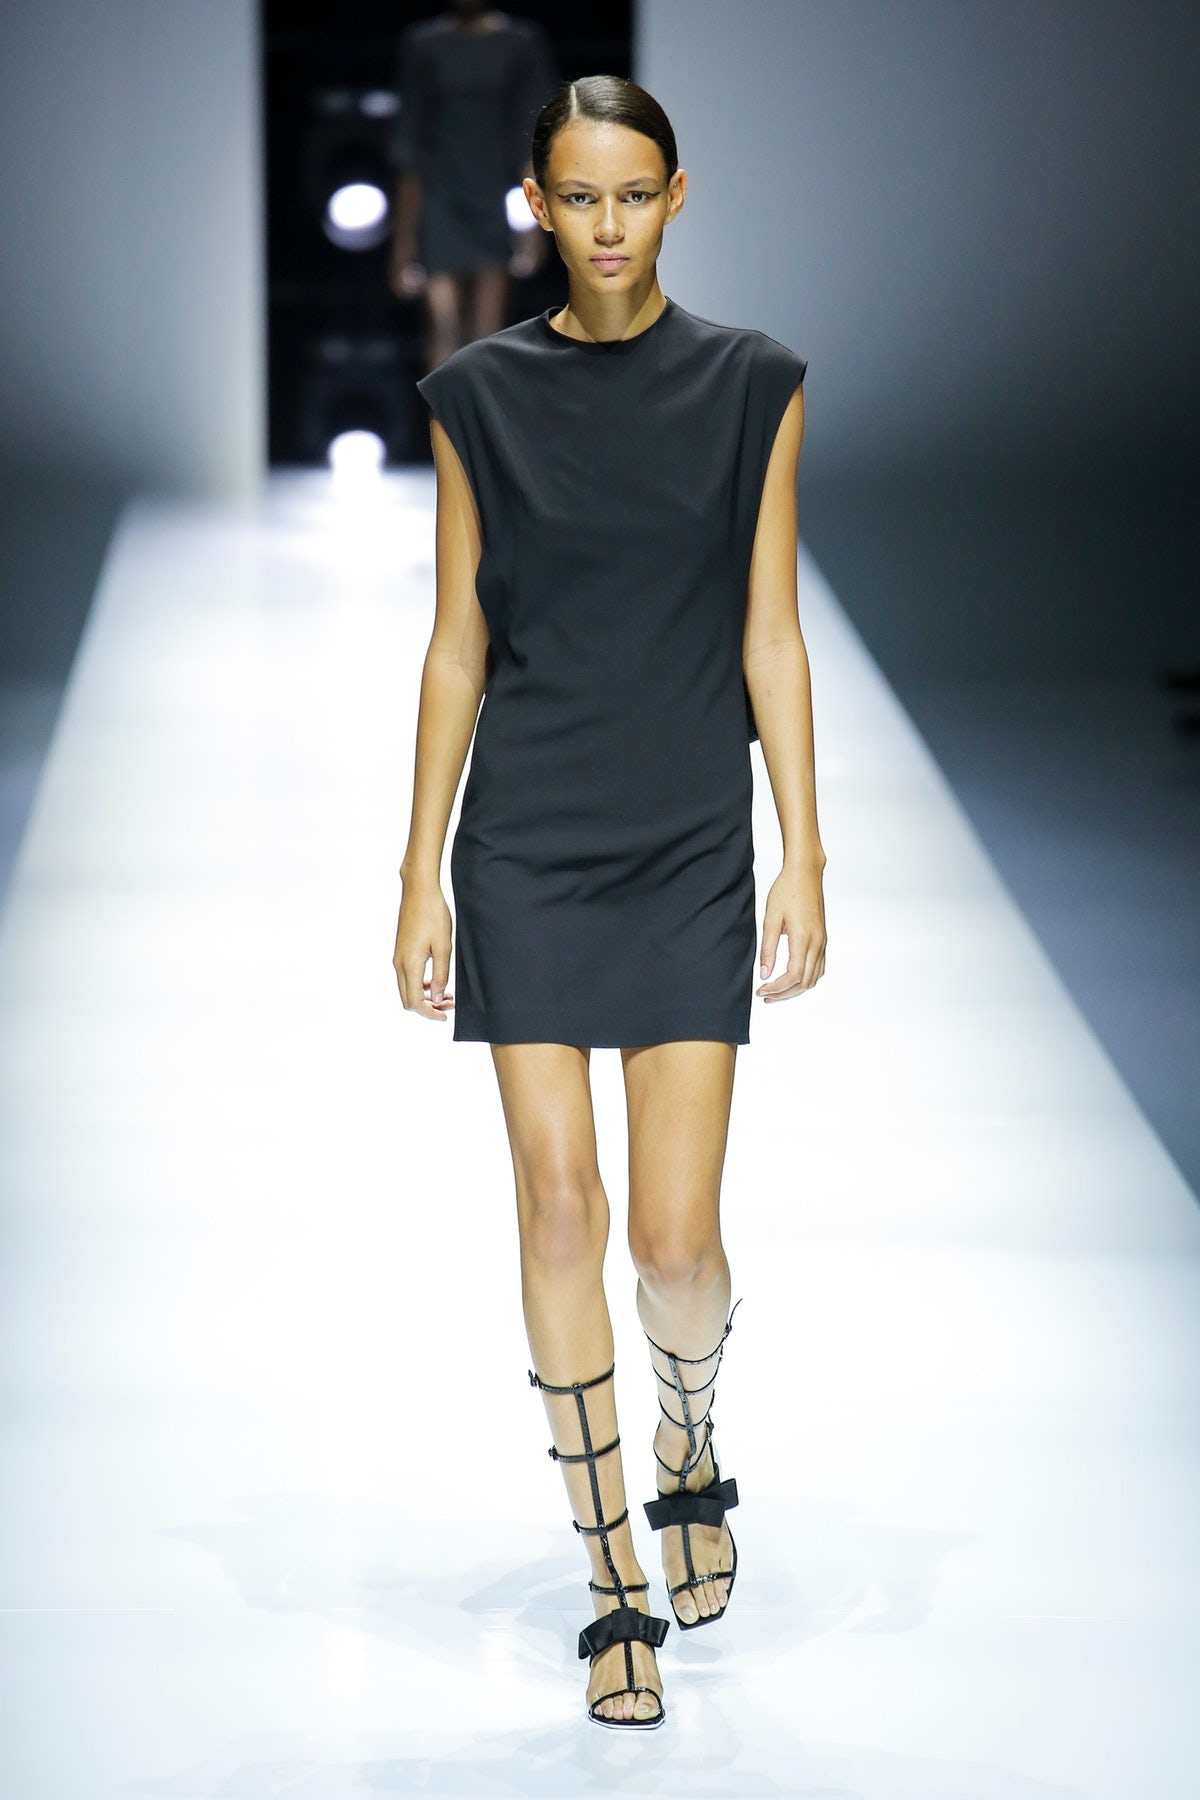 A Very Different Lanvin